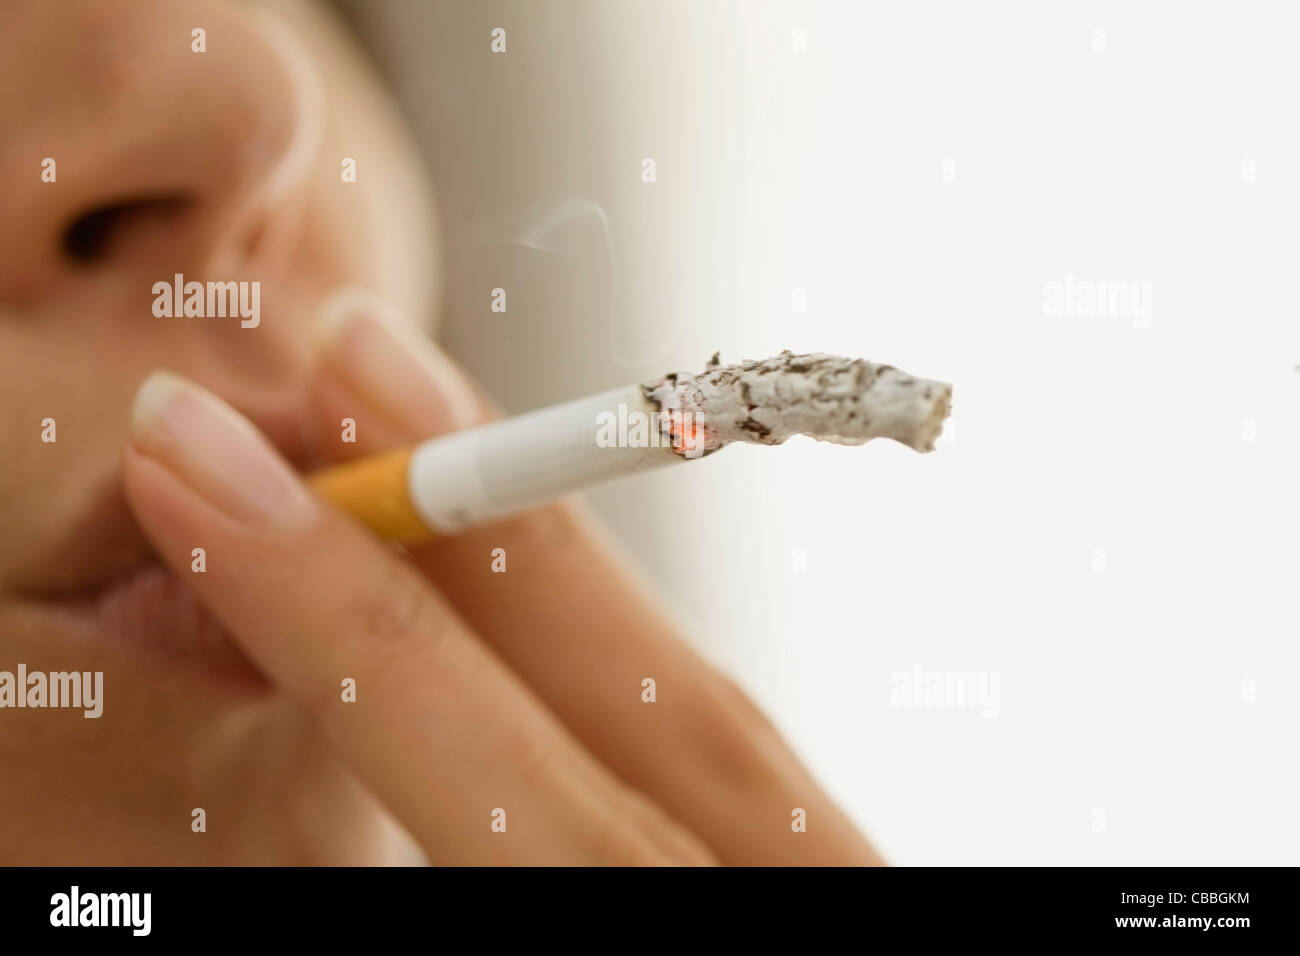 Close up of woman smoking cigarette Stock Photo